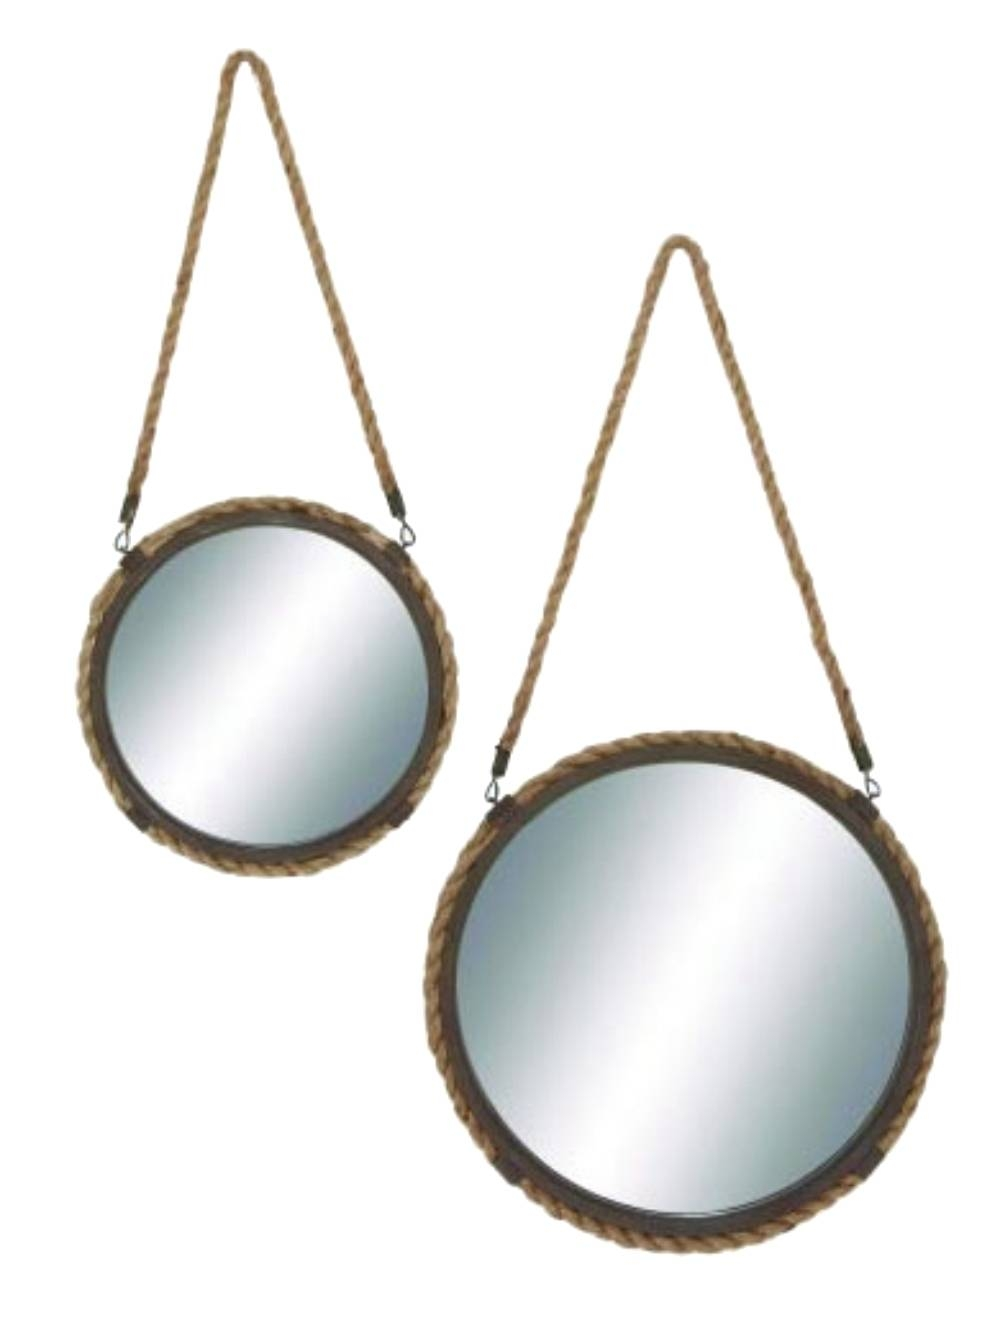 Round Mirrors Aged Steel With Rope Hemp Edge Sold As Pair Old with Old-Style Mirrors (Image 11 of 15)